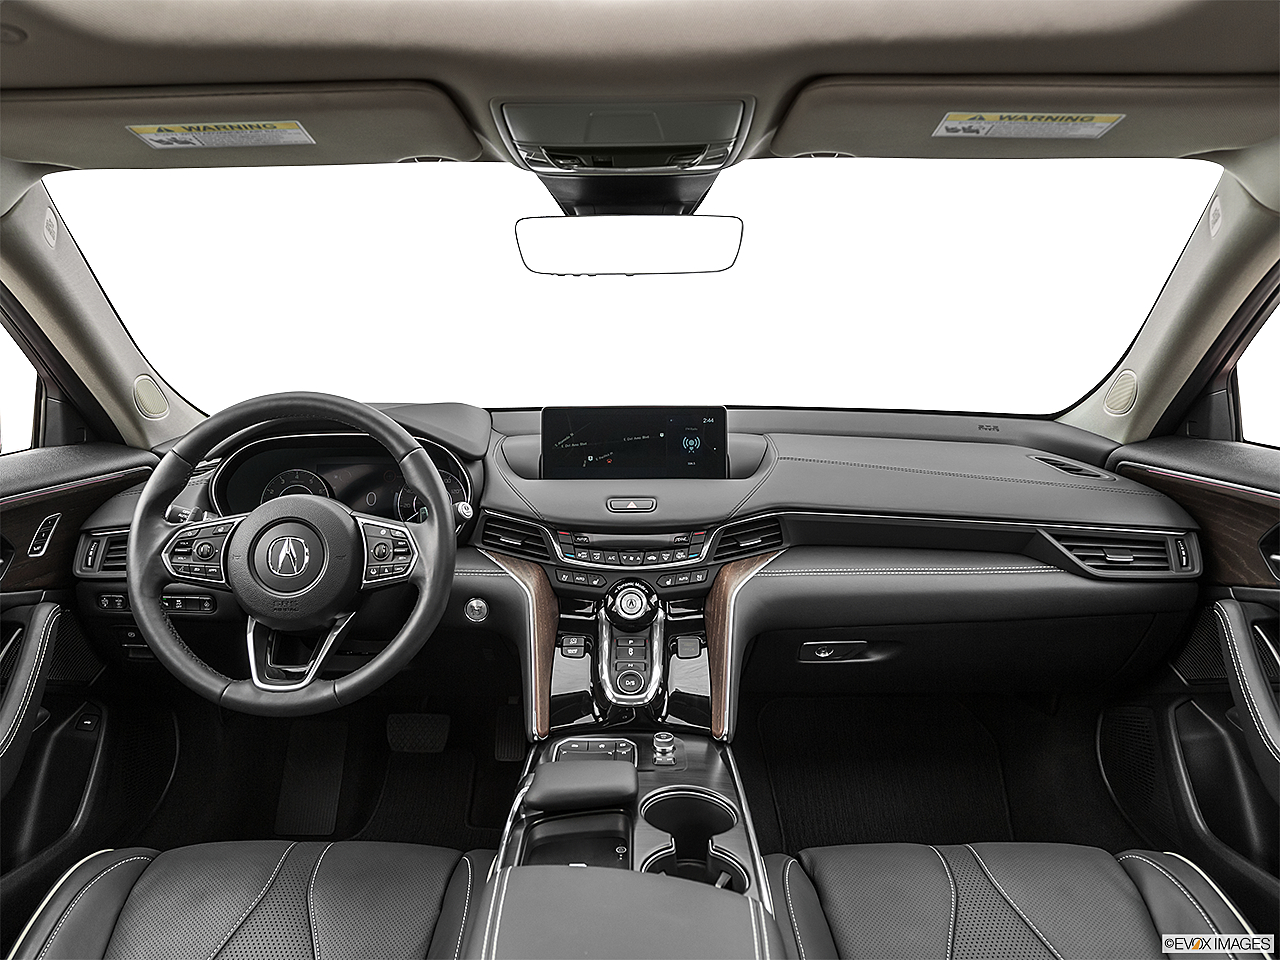 2021 Acura TLX, centered wide dash shot